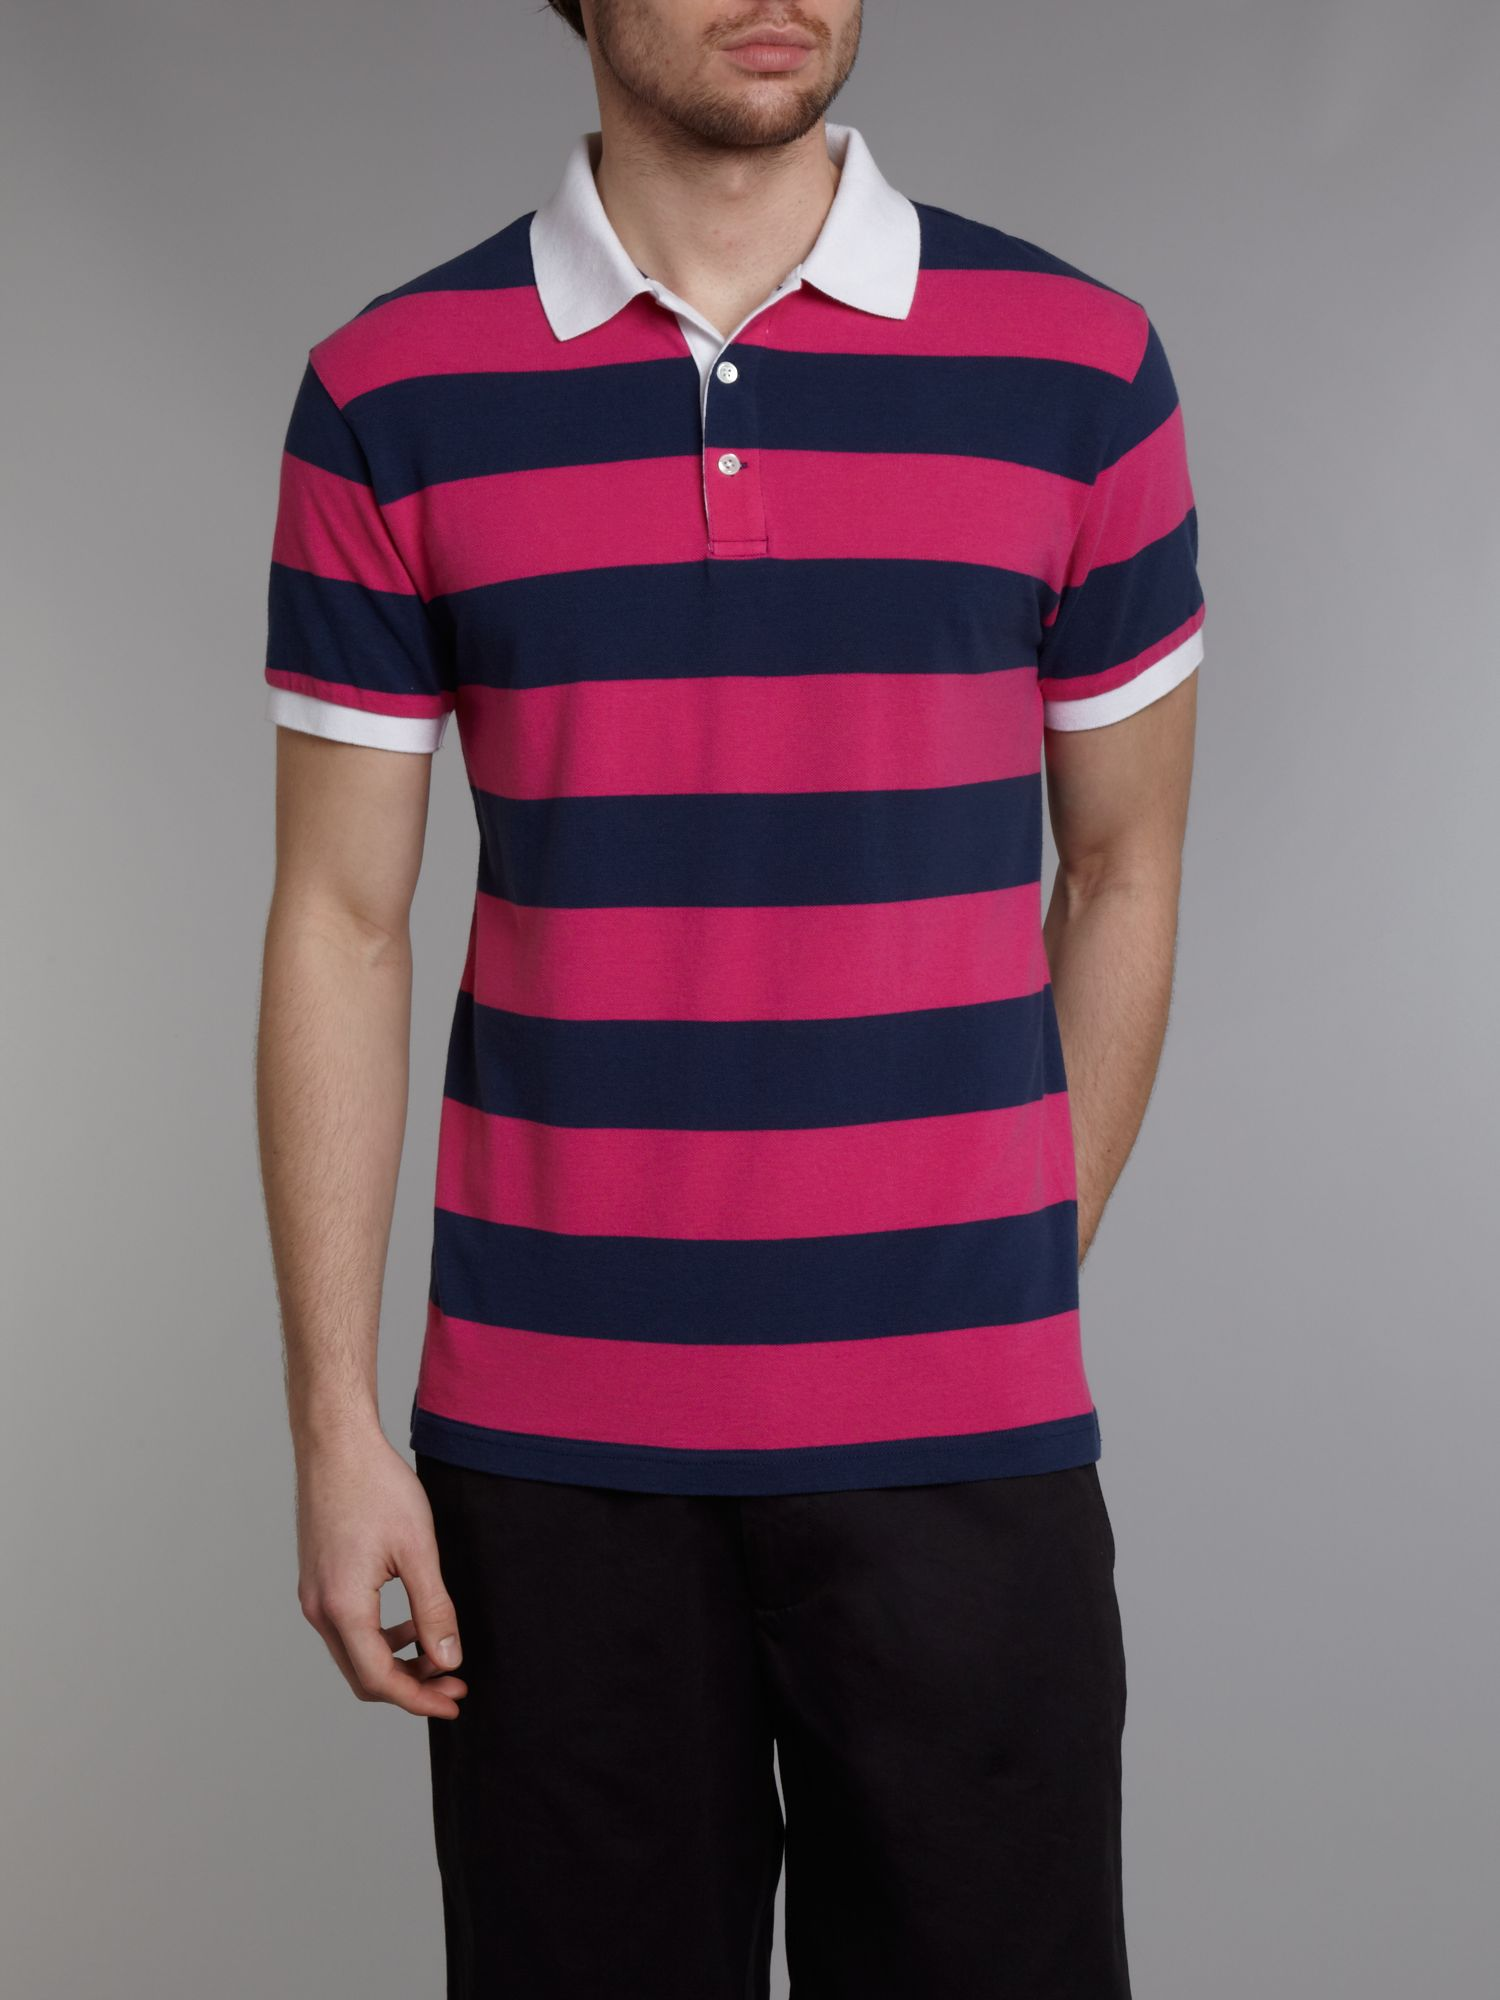 Bar stripe pique polo shirt